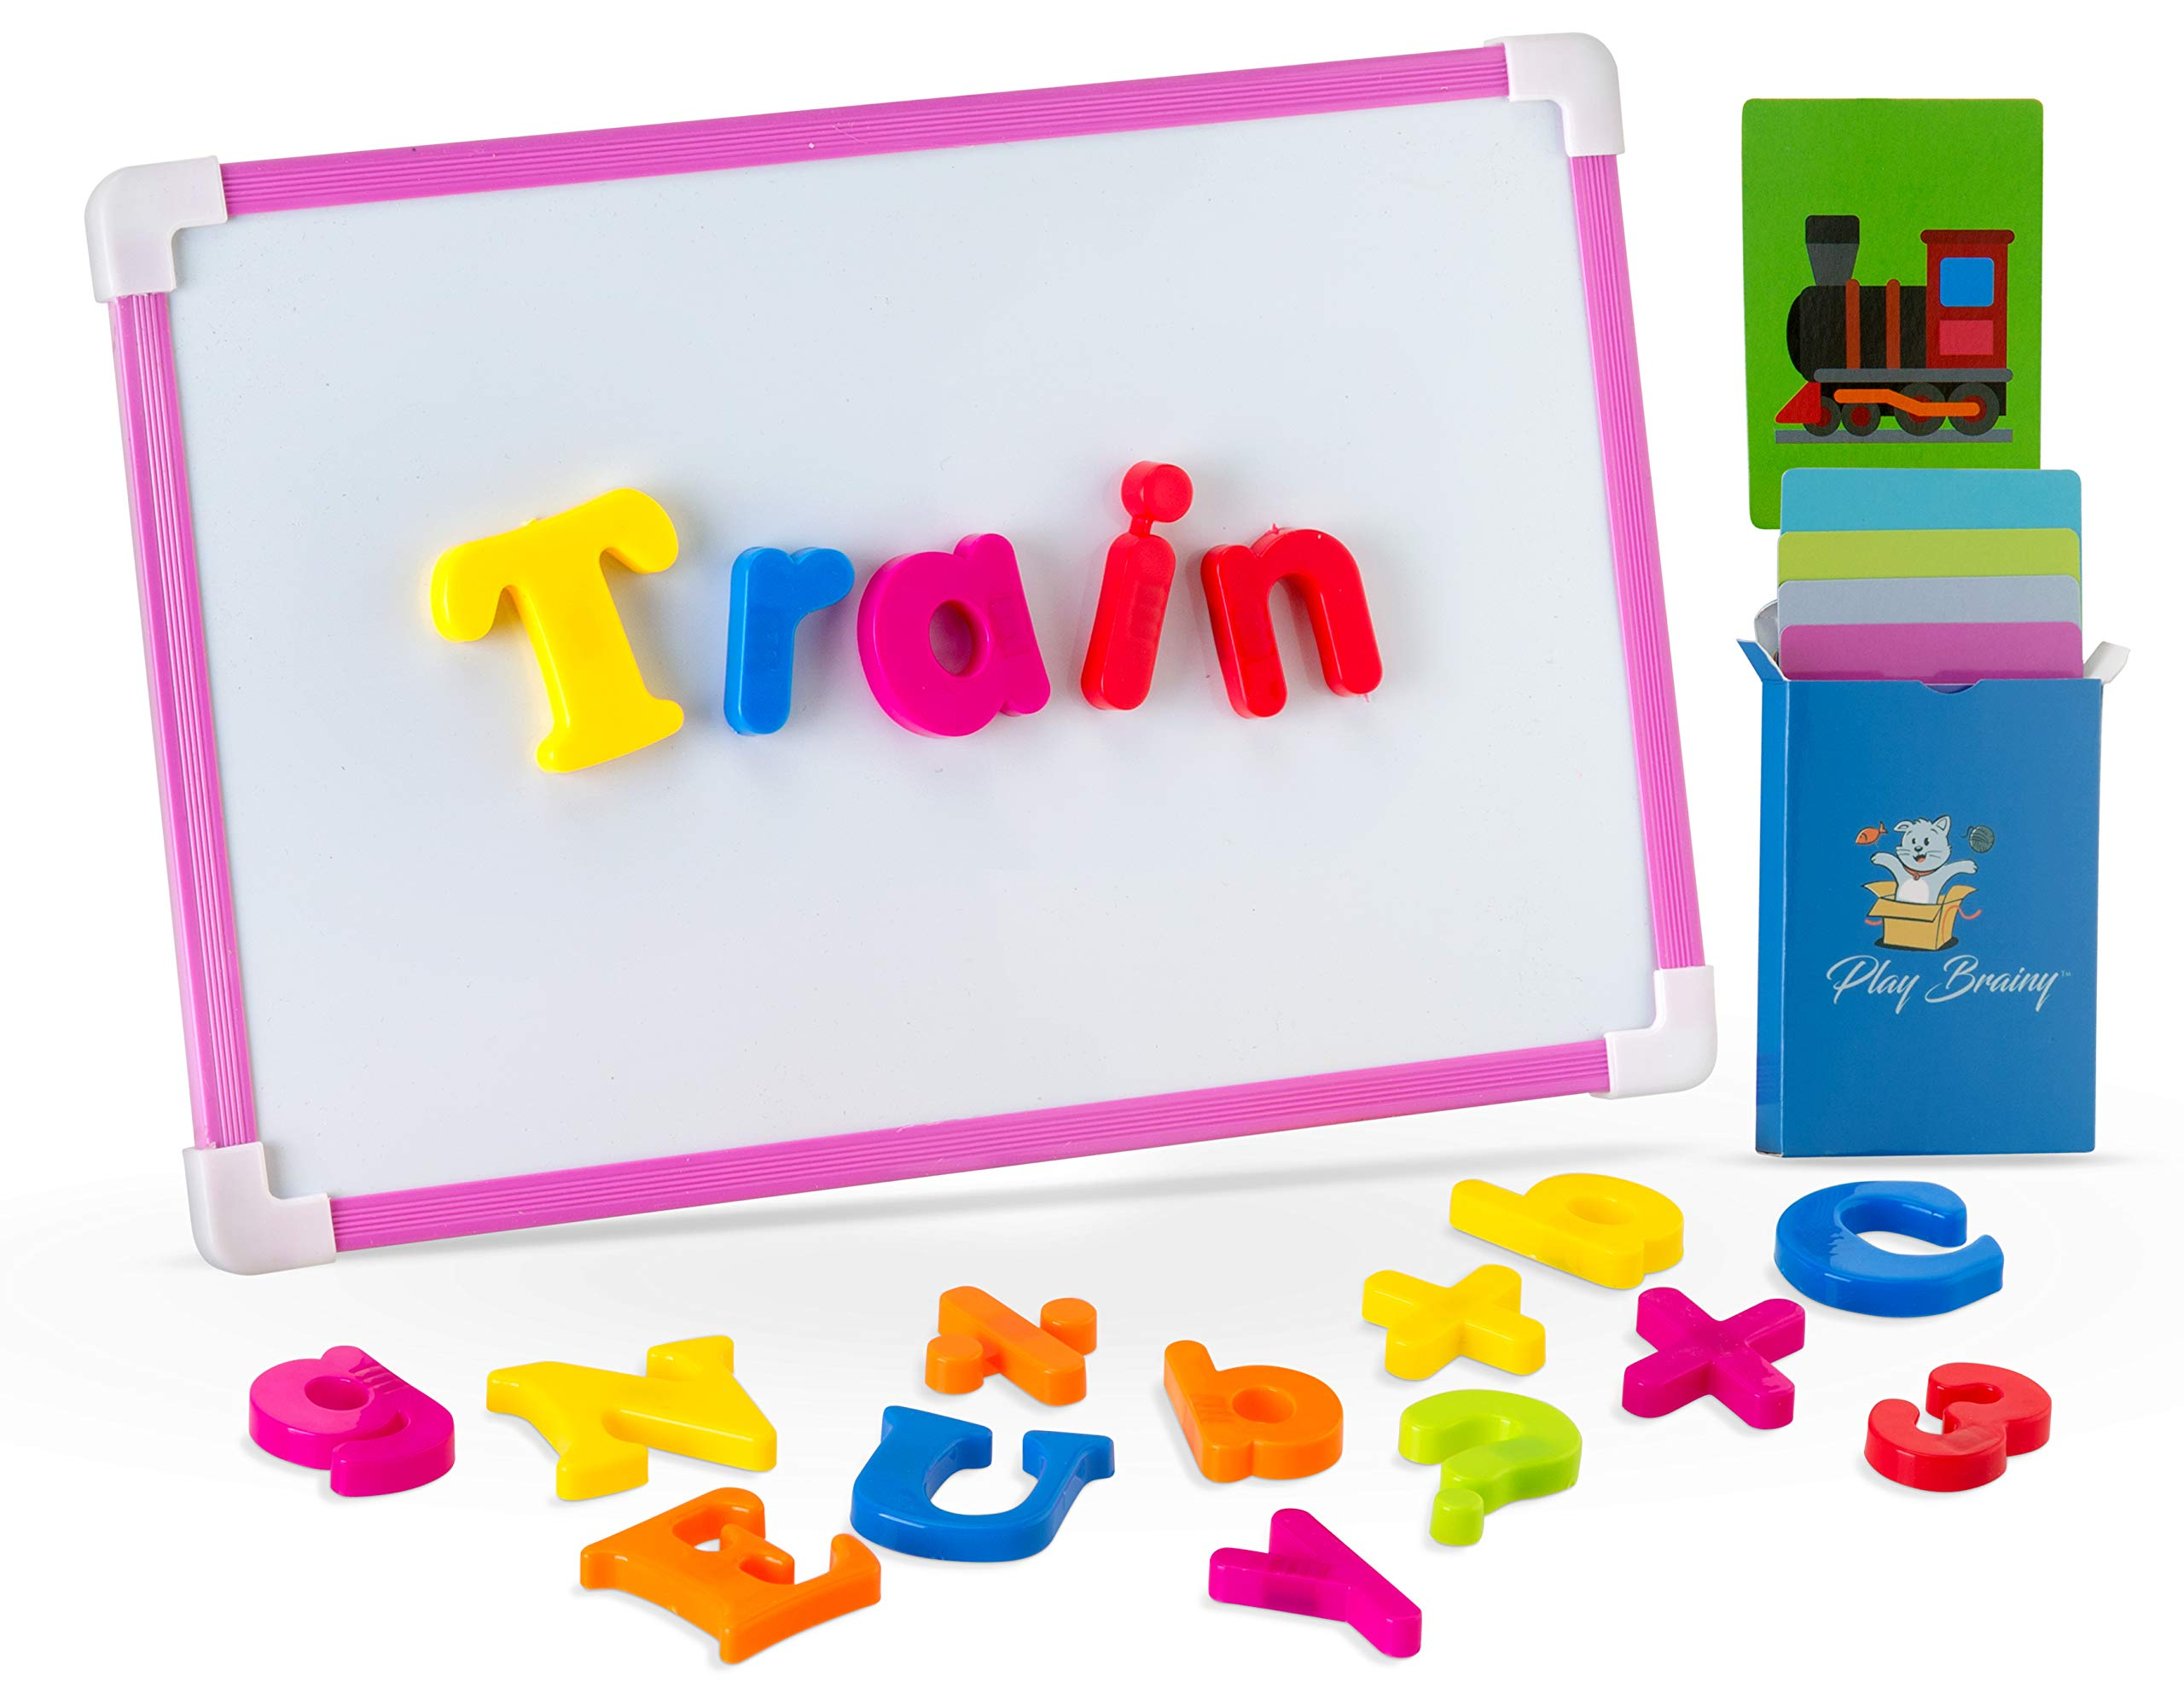 Play Brainy ABC Magnets Set with 30 Fun and Educational Picture Spelling Cards - 78 Piece Magnetic Alphabet and Number Set - Magnetic Board Included - Great for Home or Classroom Use- Bag Included by Play Brainy